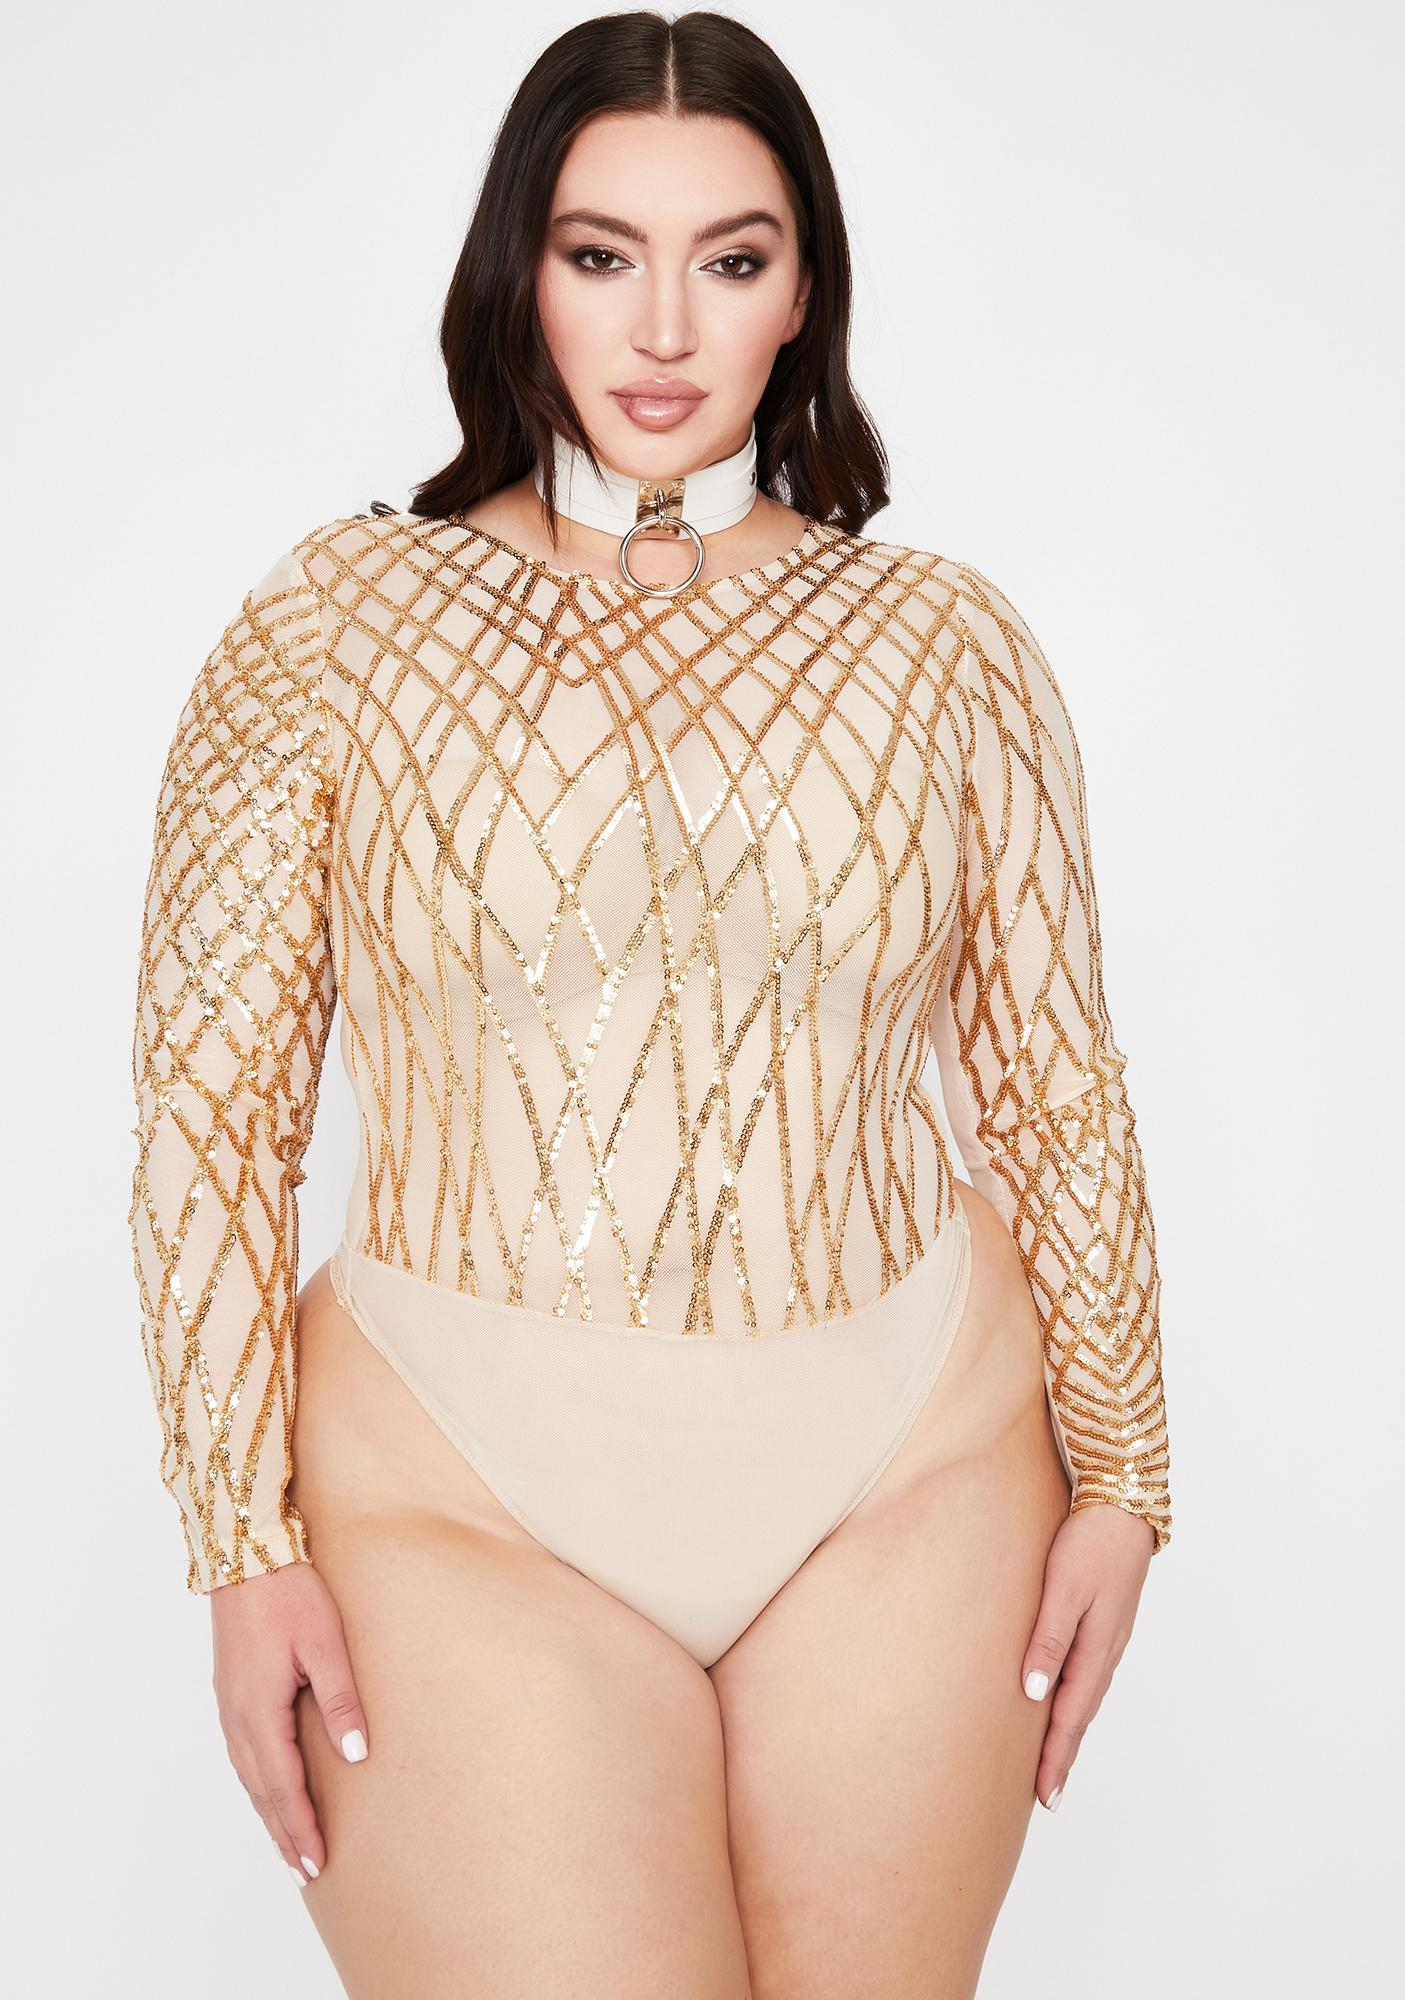 Gilded Her Complicated Crush Sequin Bodysuit